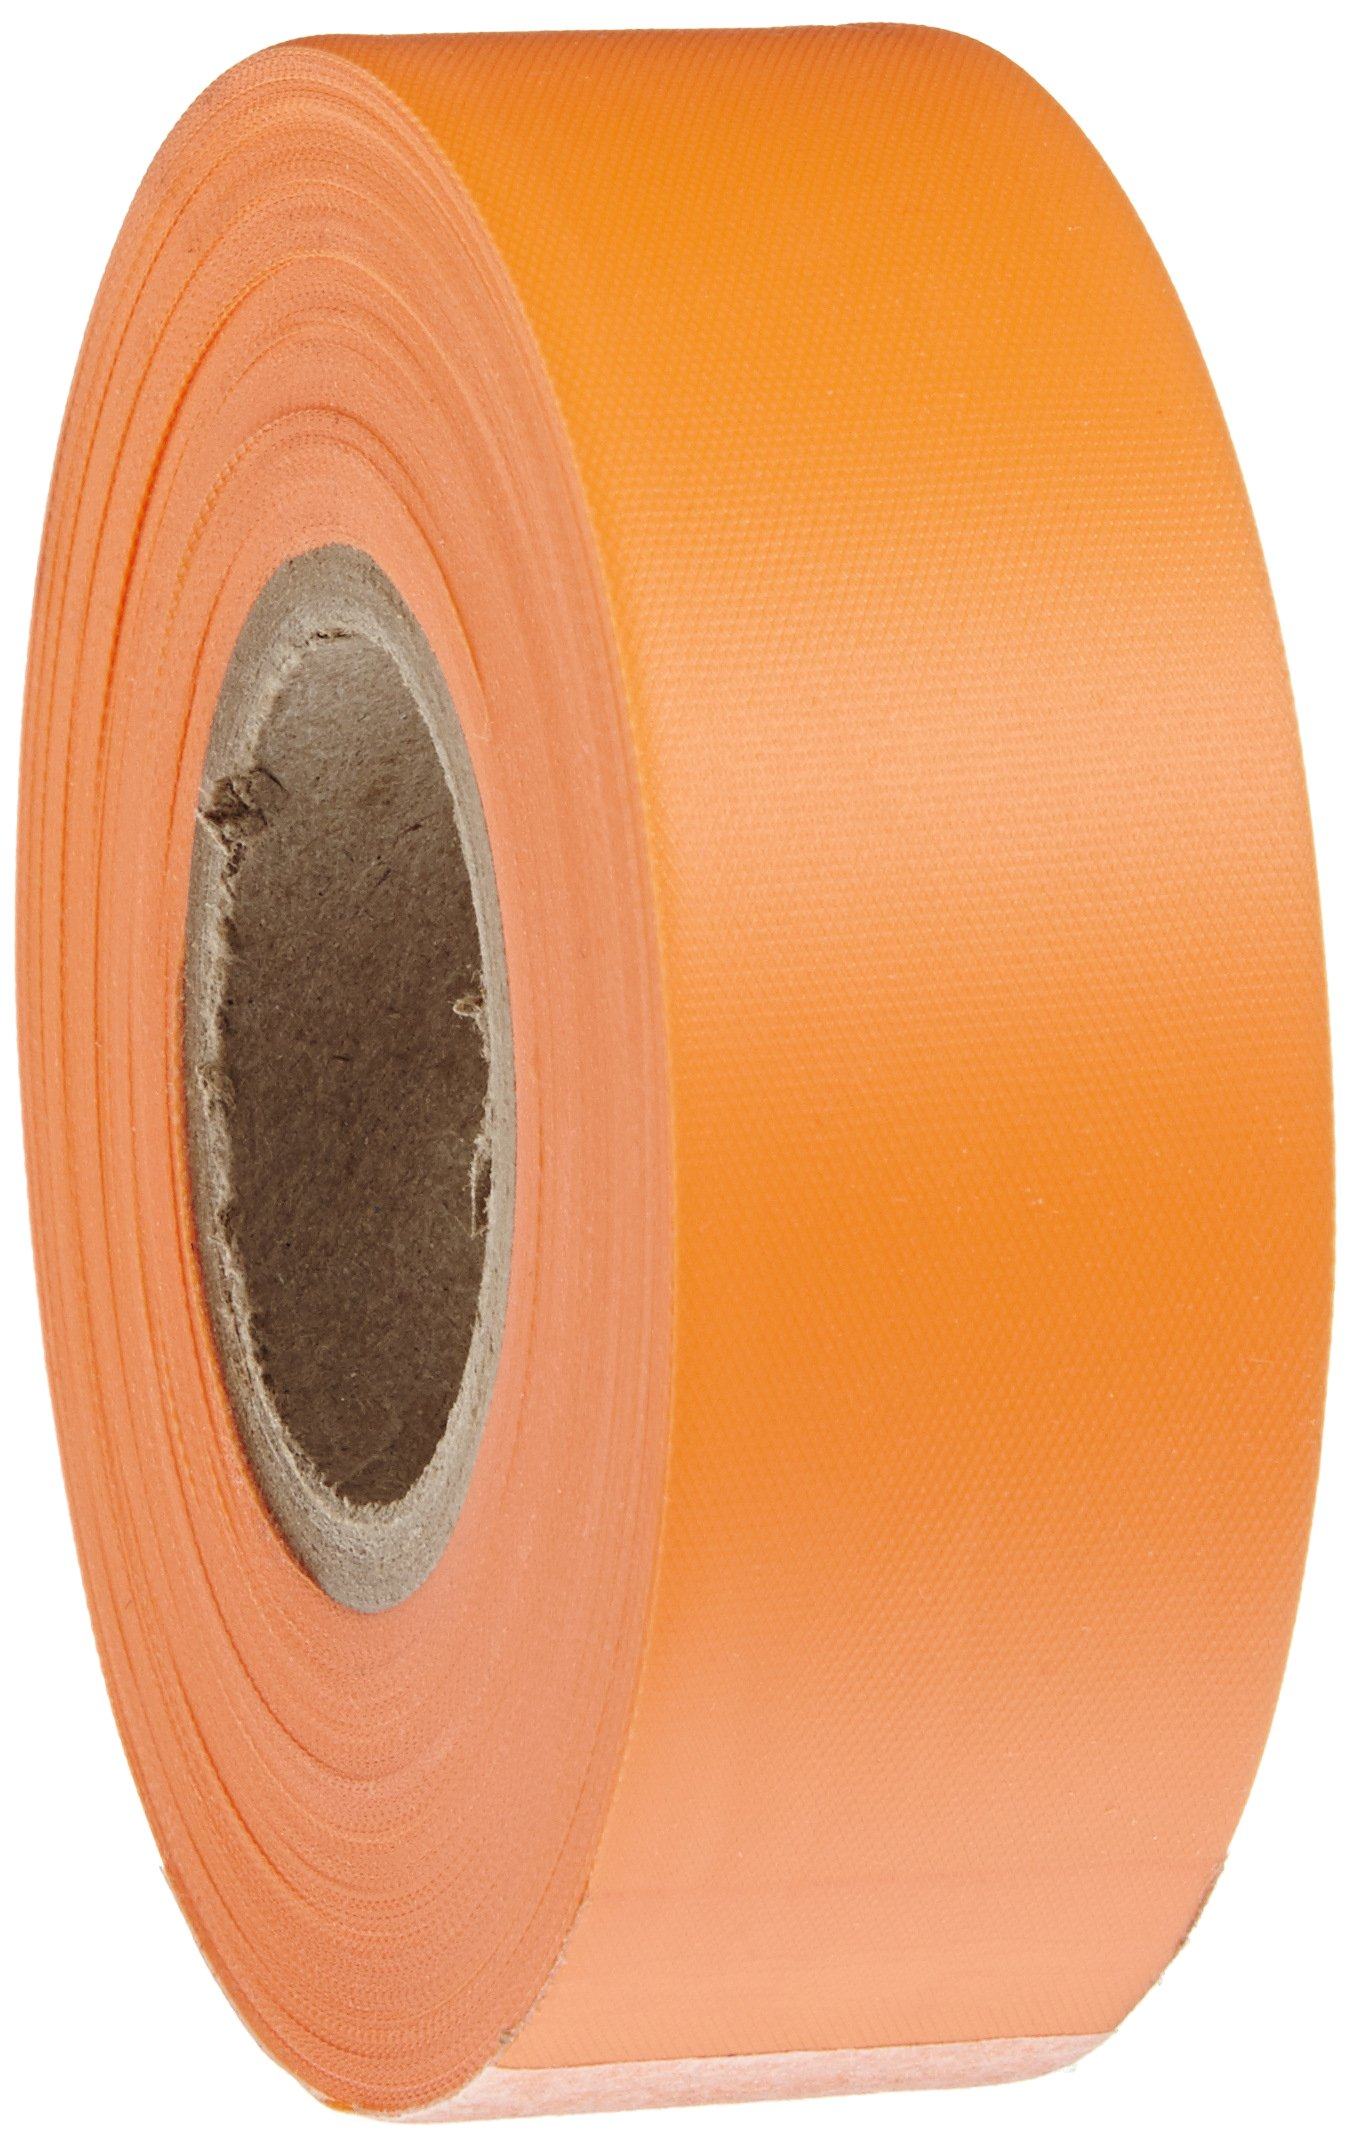 Brady Flourescent Orange Flagging Tape for Boundaries and Hazardous Areas - Non-Adhesive Tape, 1.188'' Width, 150' Length (Pack of 1) - 58352